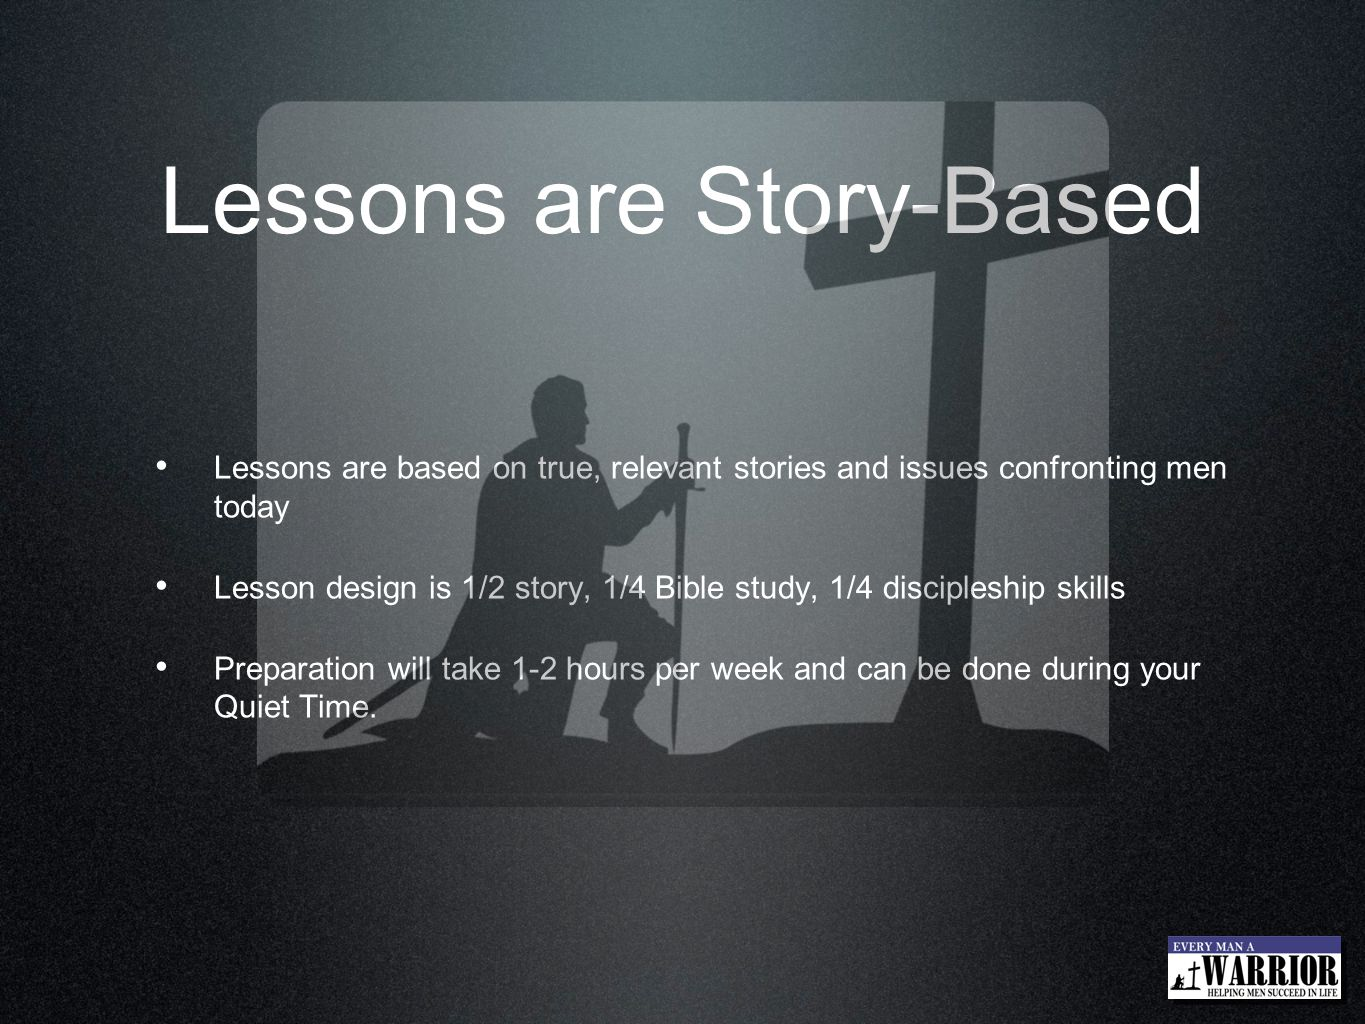 Lessons are Story-Based